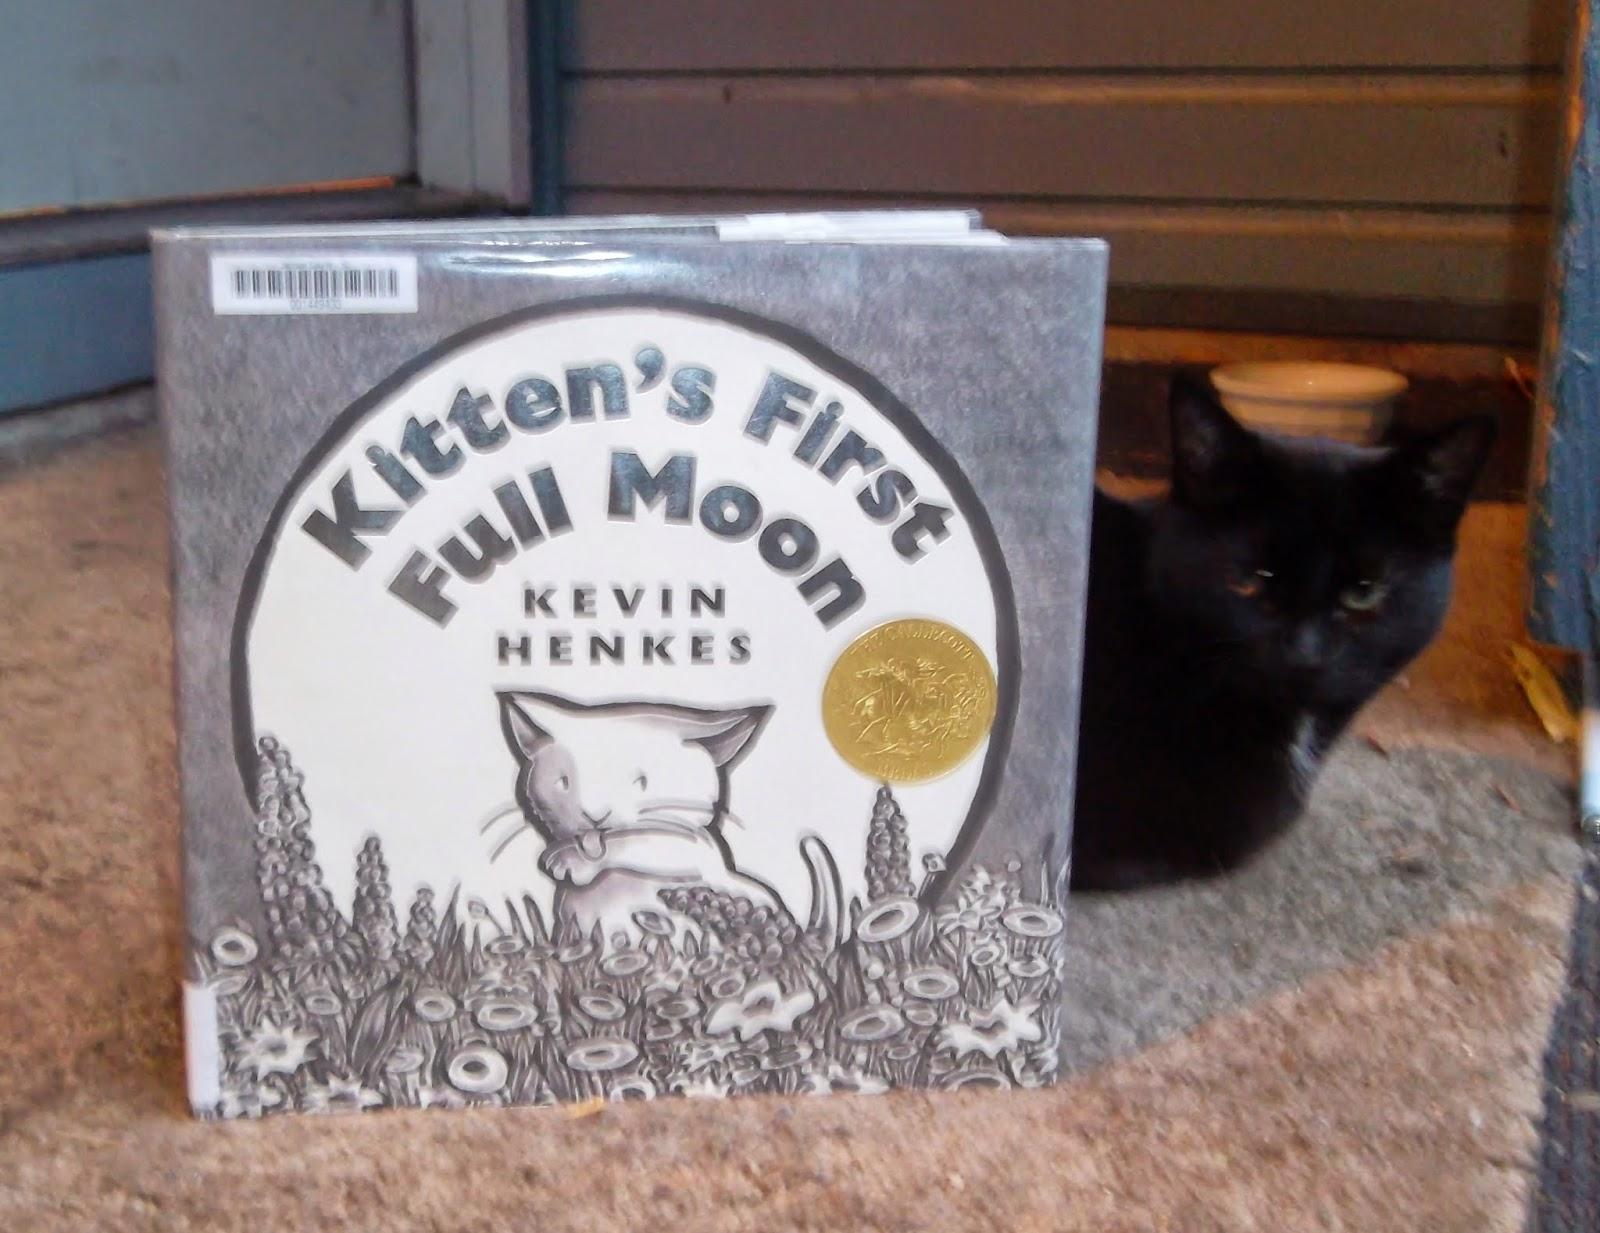 The picture book Kitten's First Full Moon by Kevin Henkes is propped up, its front cover facing forward, with my black cat Starfire sitting behind it.